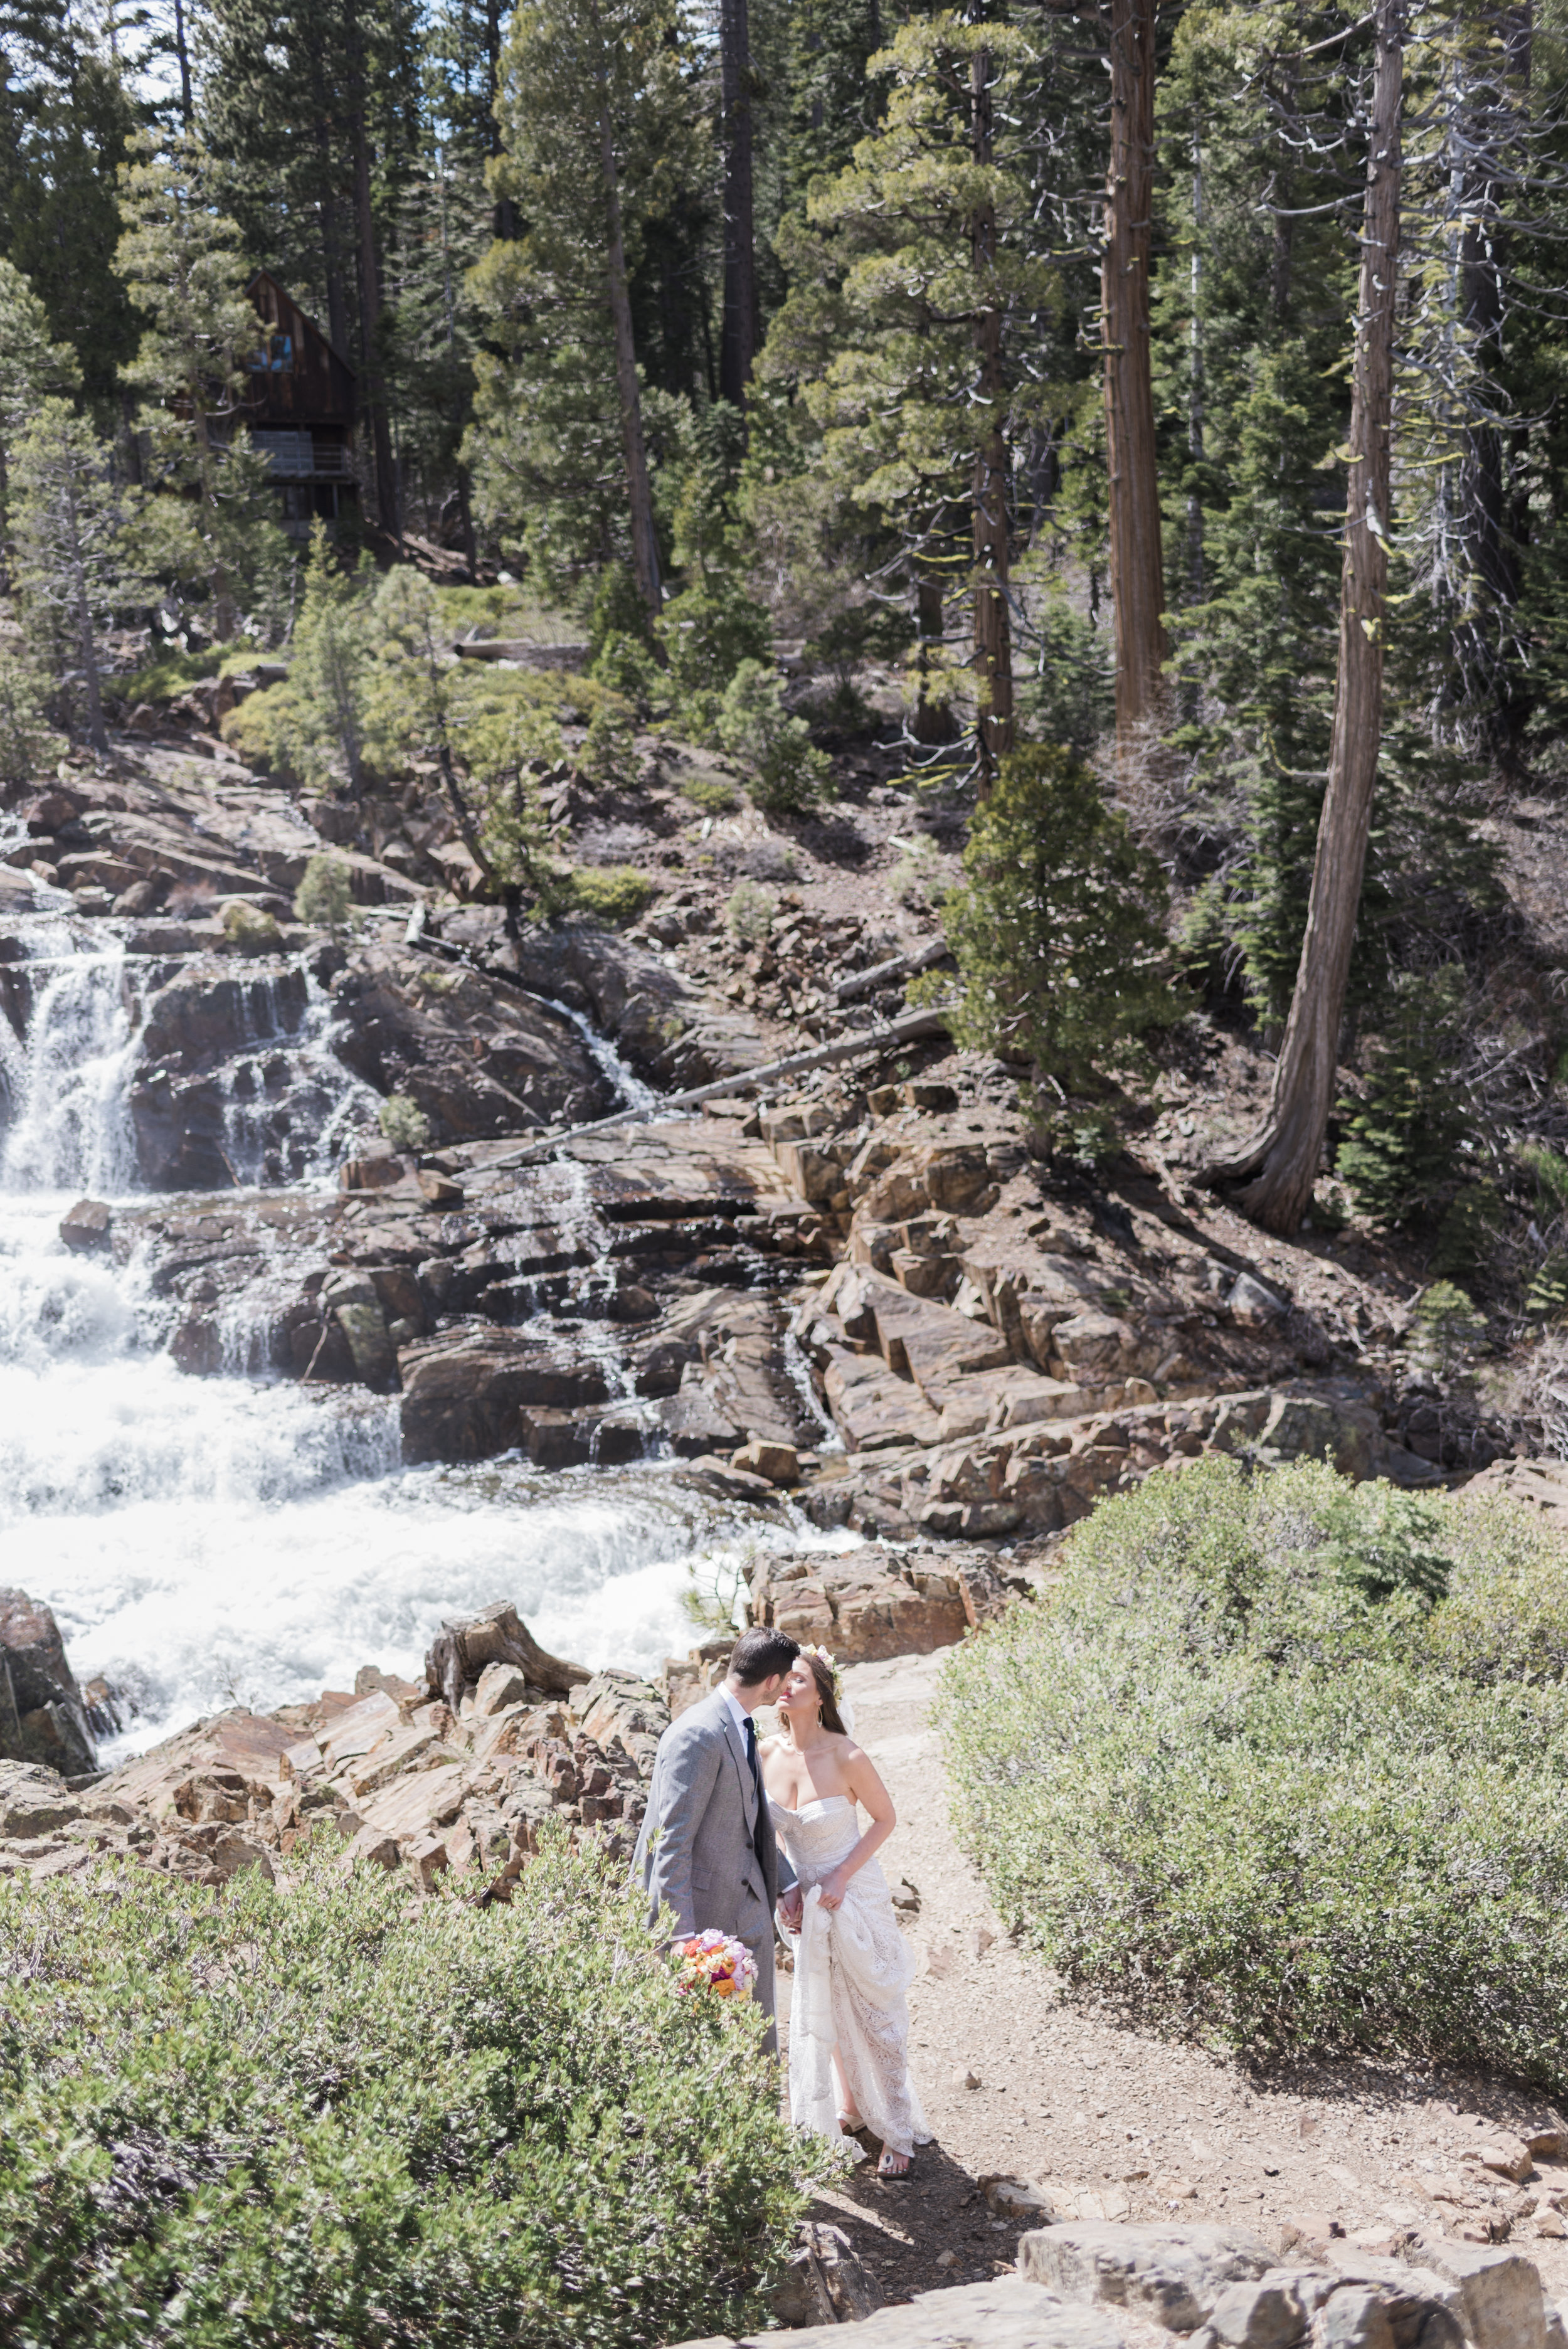 portrait-of-bride-and-groom's-first-look-by-a-waterfall.jpg